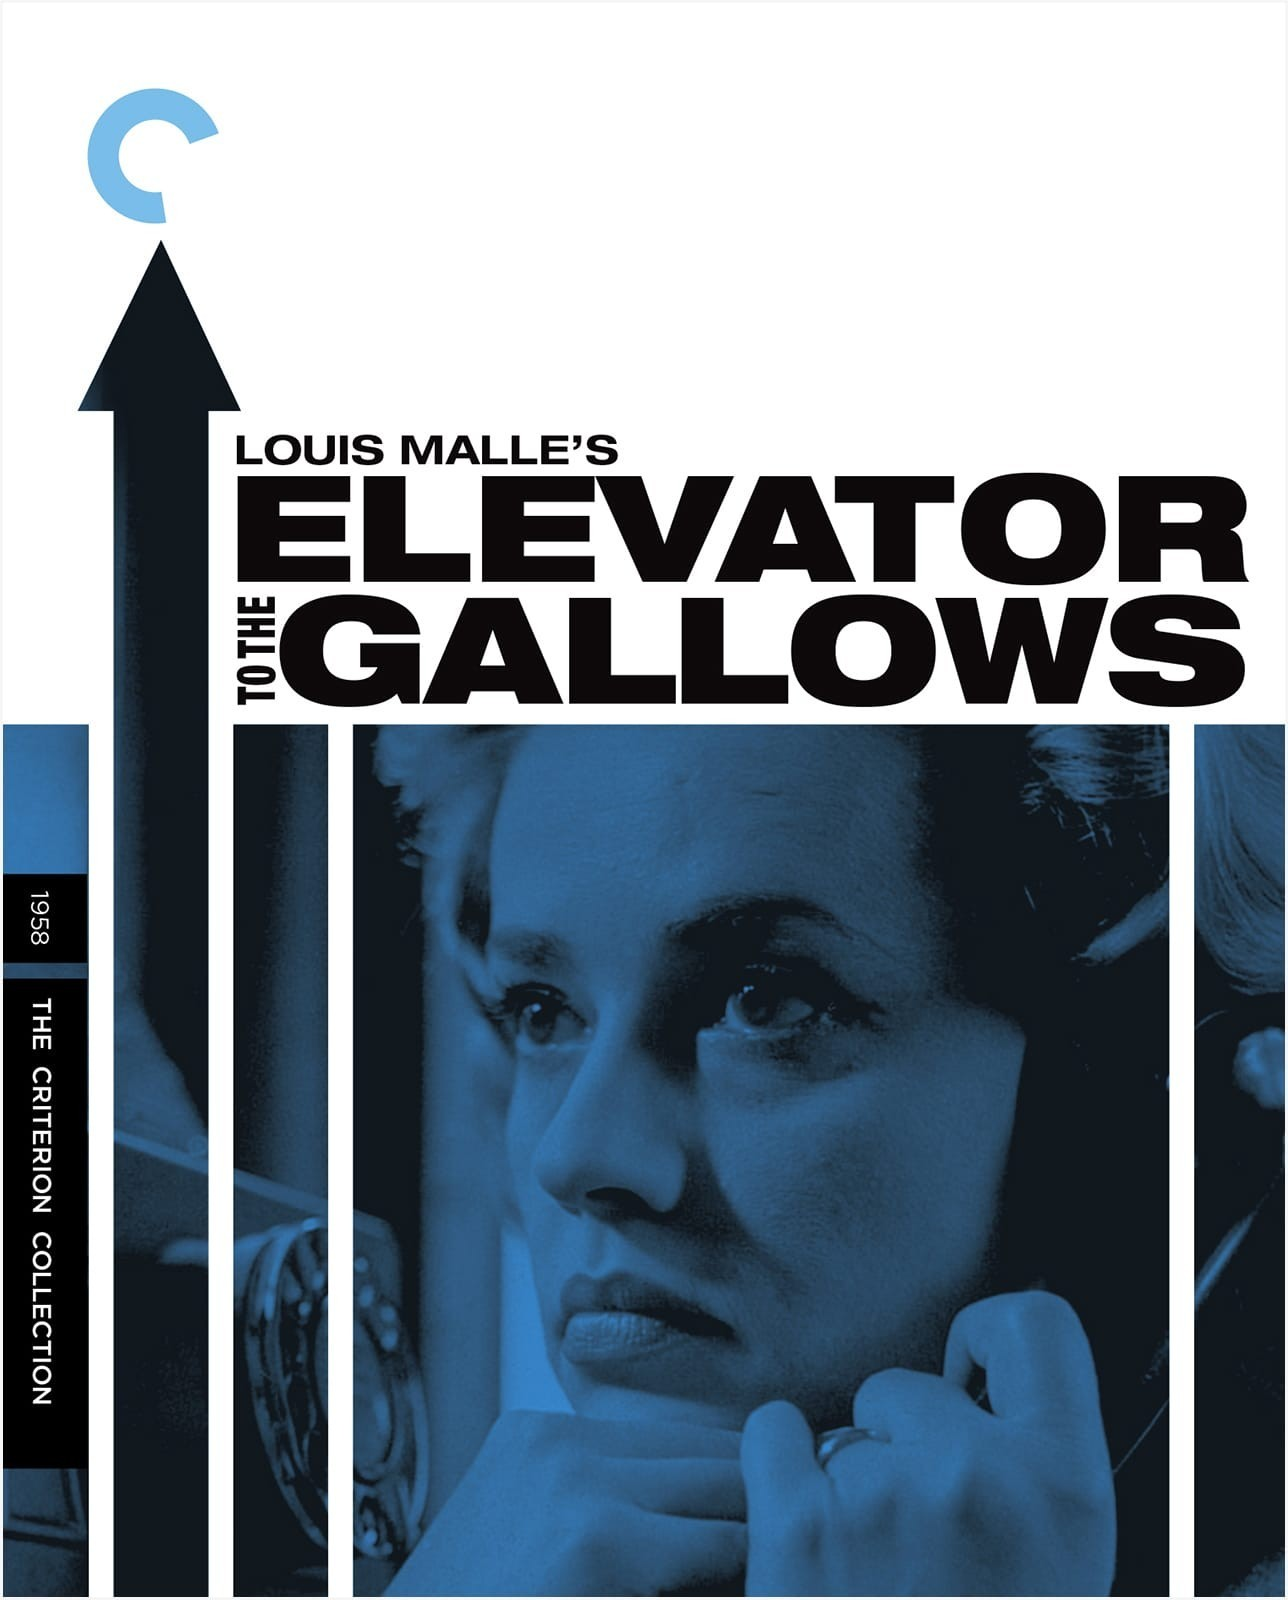 Elevator to the Gallows (The Criterion Collection)(1958) Blu-ray